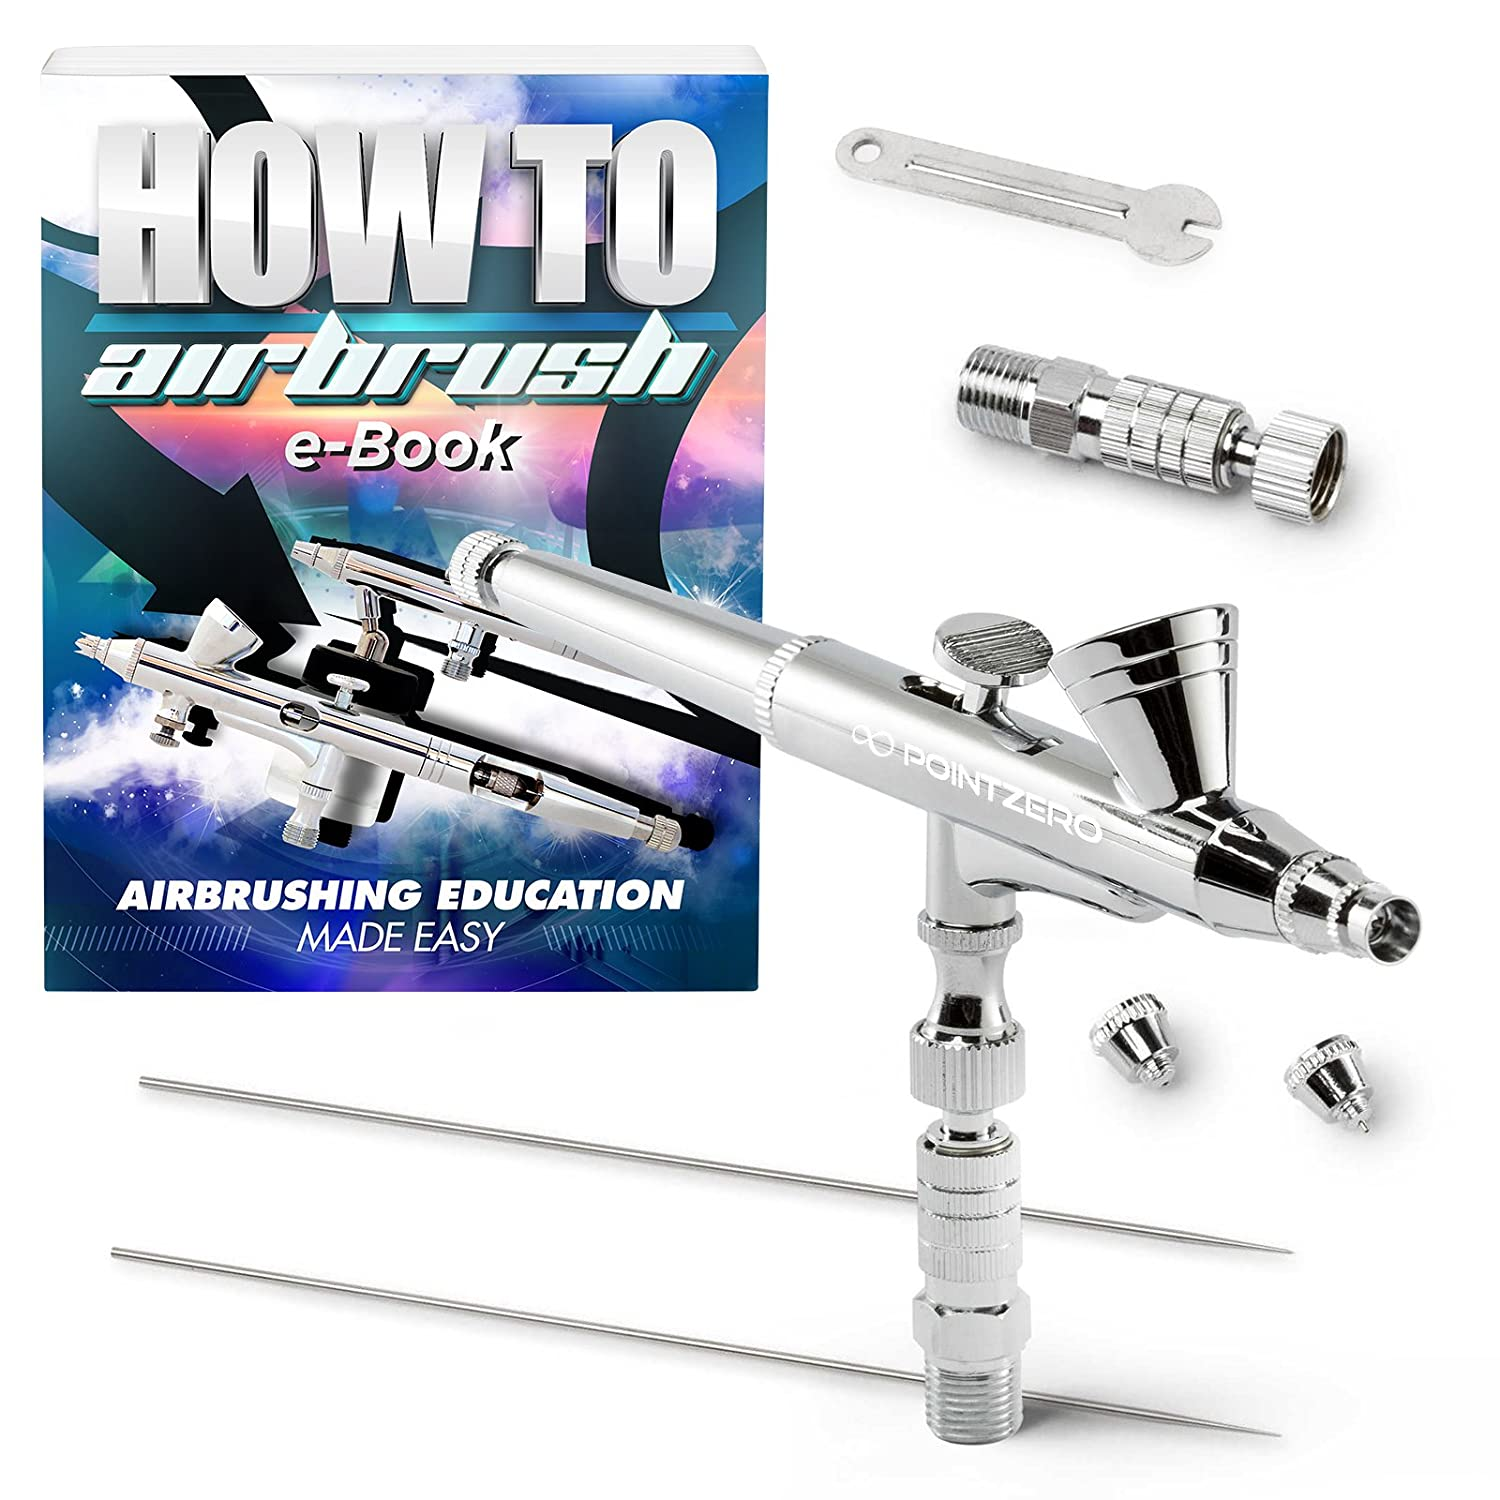 PointZero Dual-Action 2cc Gravity-feed Airbrush 3 Tip Set (0.2mm 0.3mm 0.5mm) PointZero Airbrush 4336951474